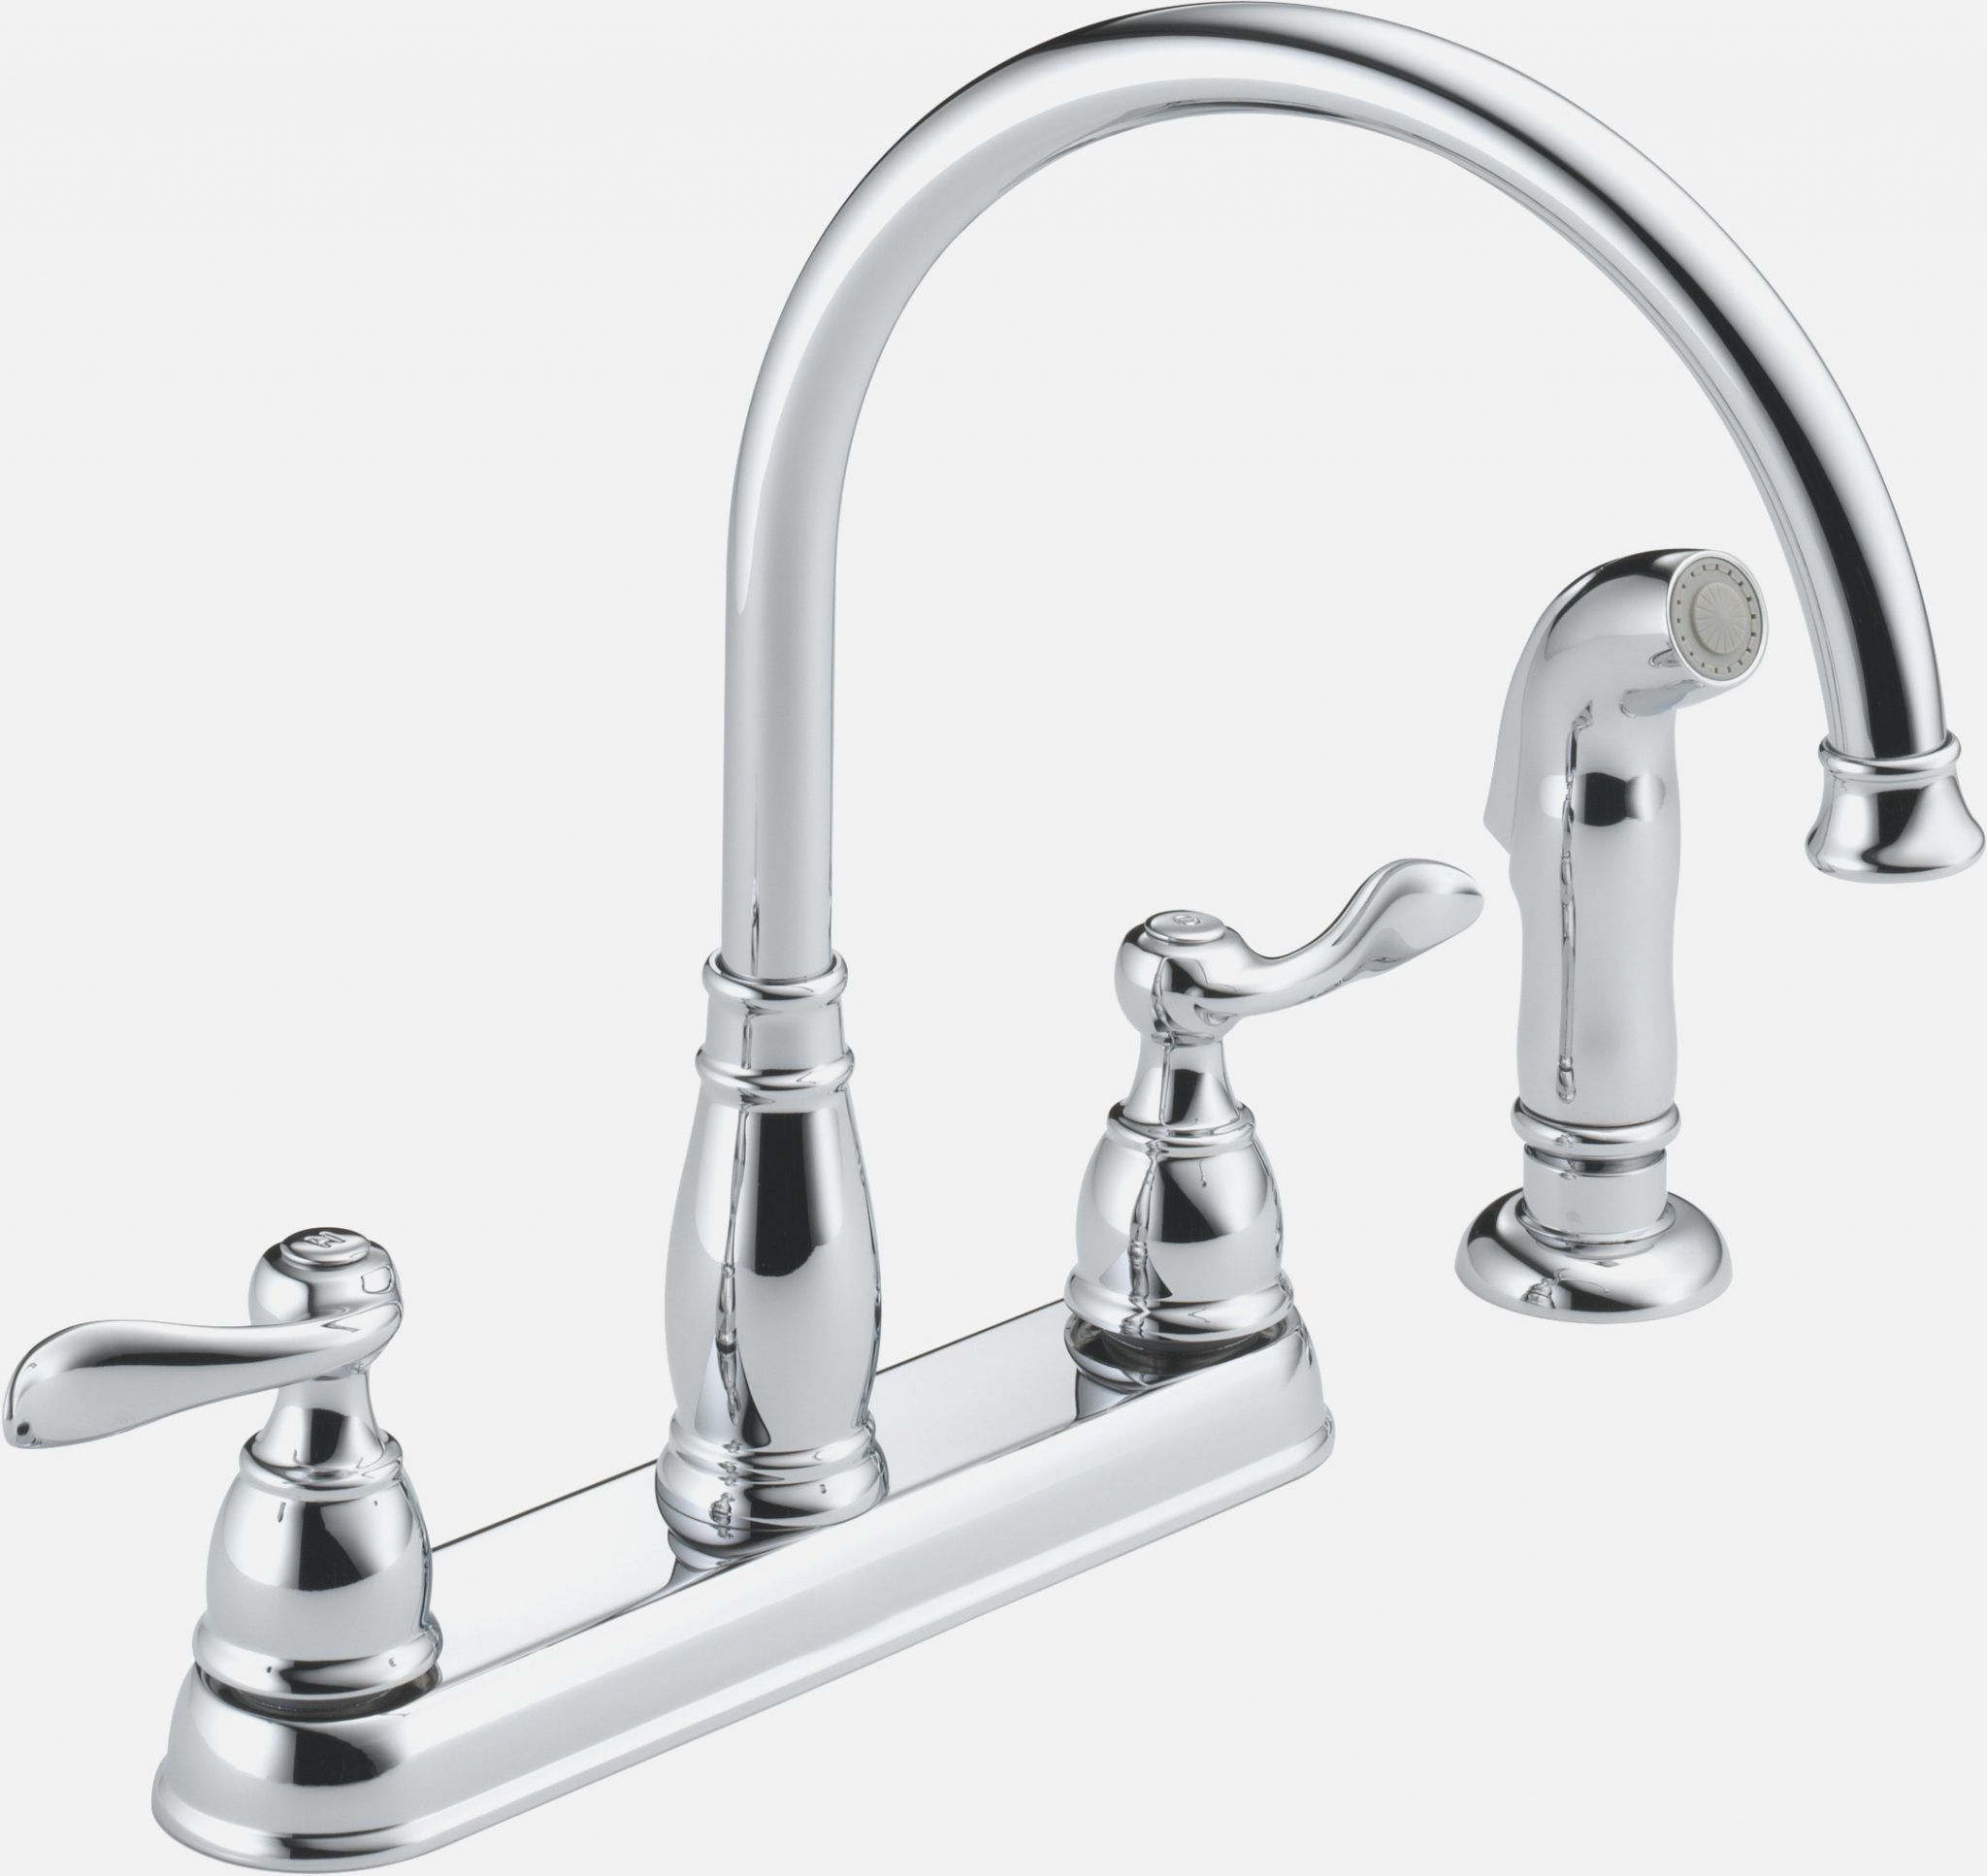 Wall Mount Kitchen Faucet With Sprayer Best Stainless Steel Sinks Delta Spray  Wow Blog